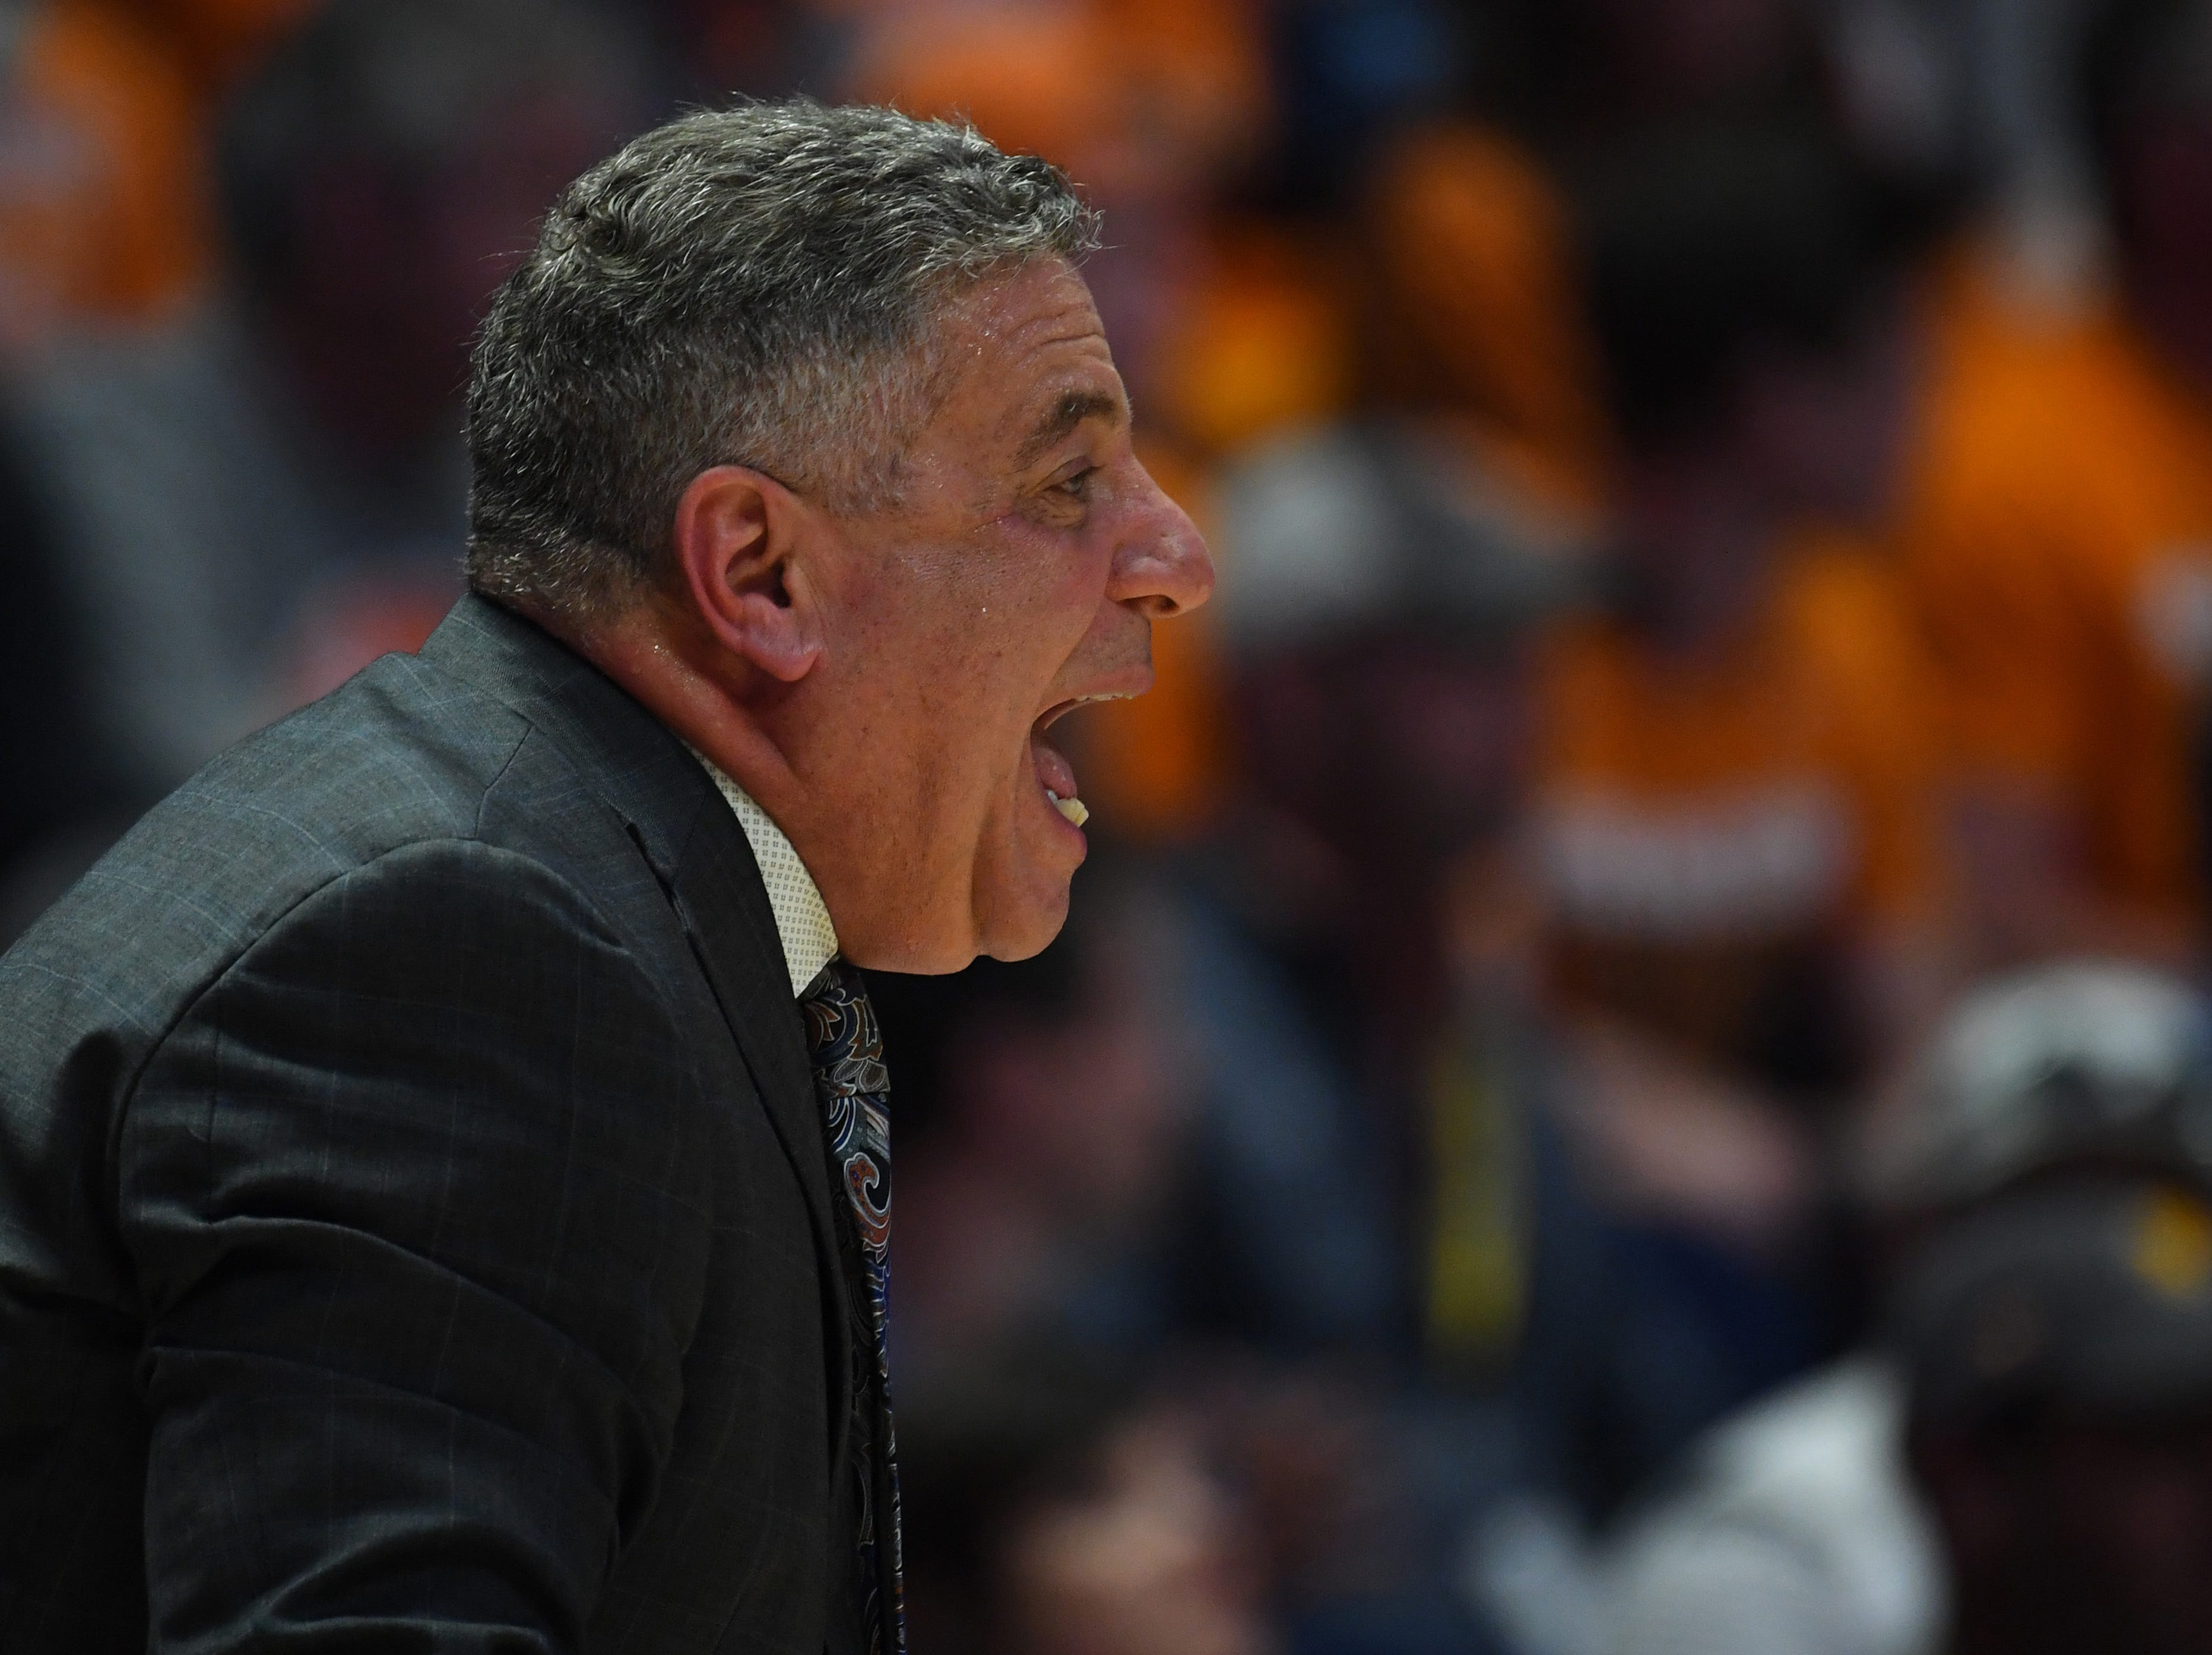 Mar 17, 2019; Nashville, TN, USA; Auburn Tigers head coach Bruce Pearl during the first half against the Tennessee Volunteers in the SEC conference tournament championship game at Bridgestone Arena. Mandatory Credit: Christopher Hanewinckel-USA TODAY Sports